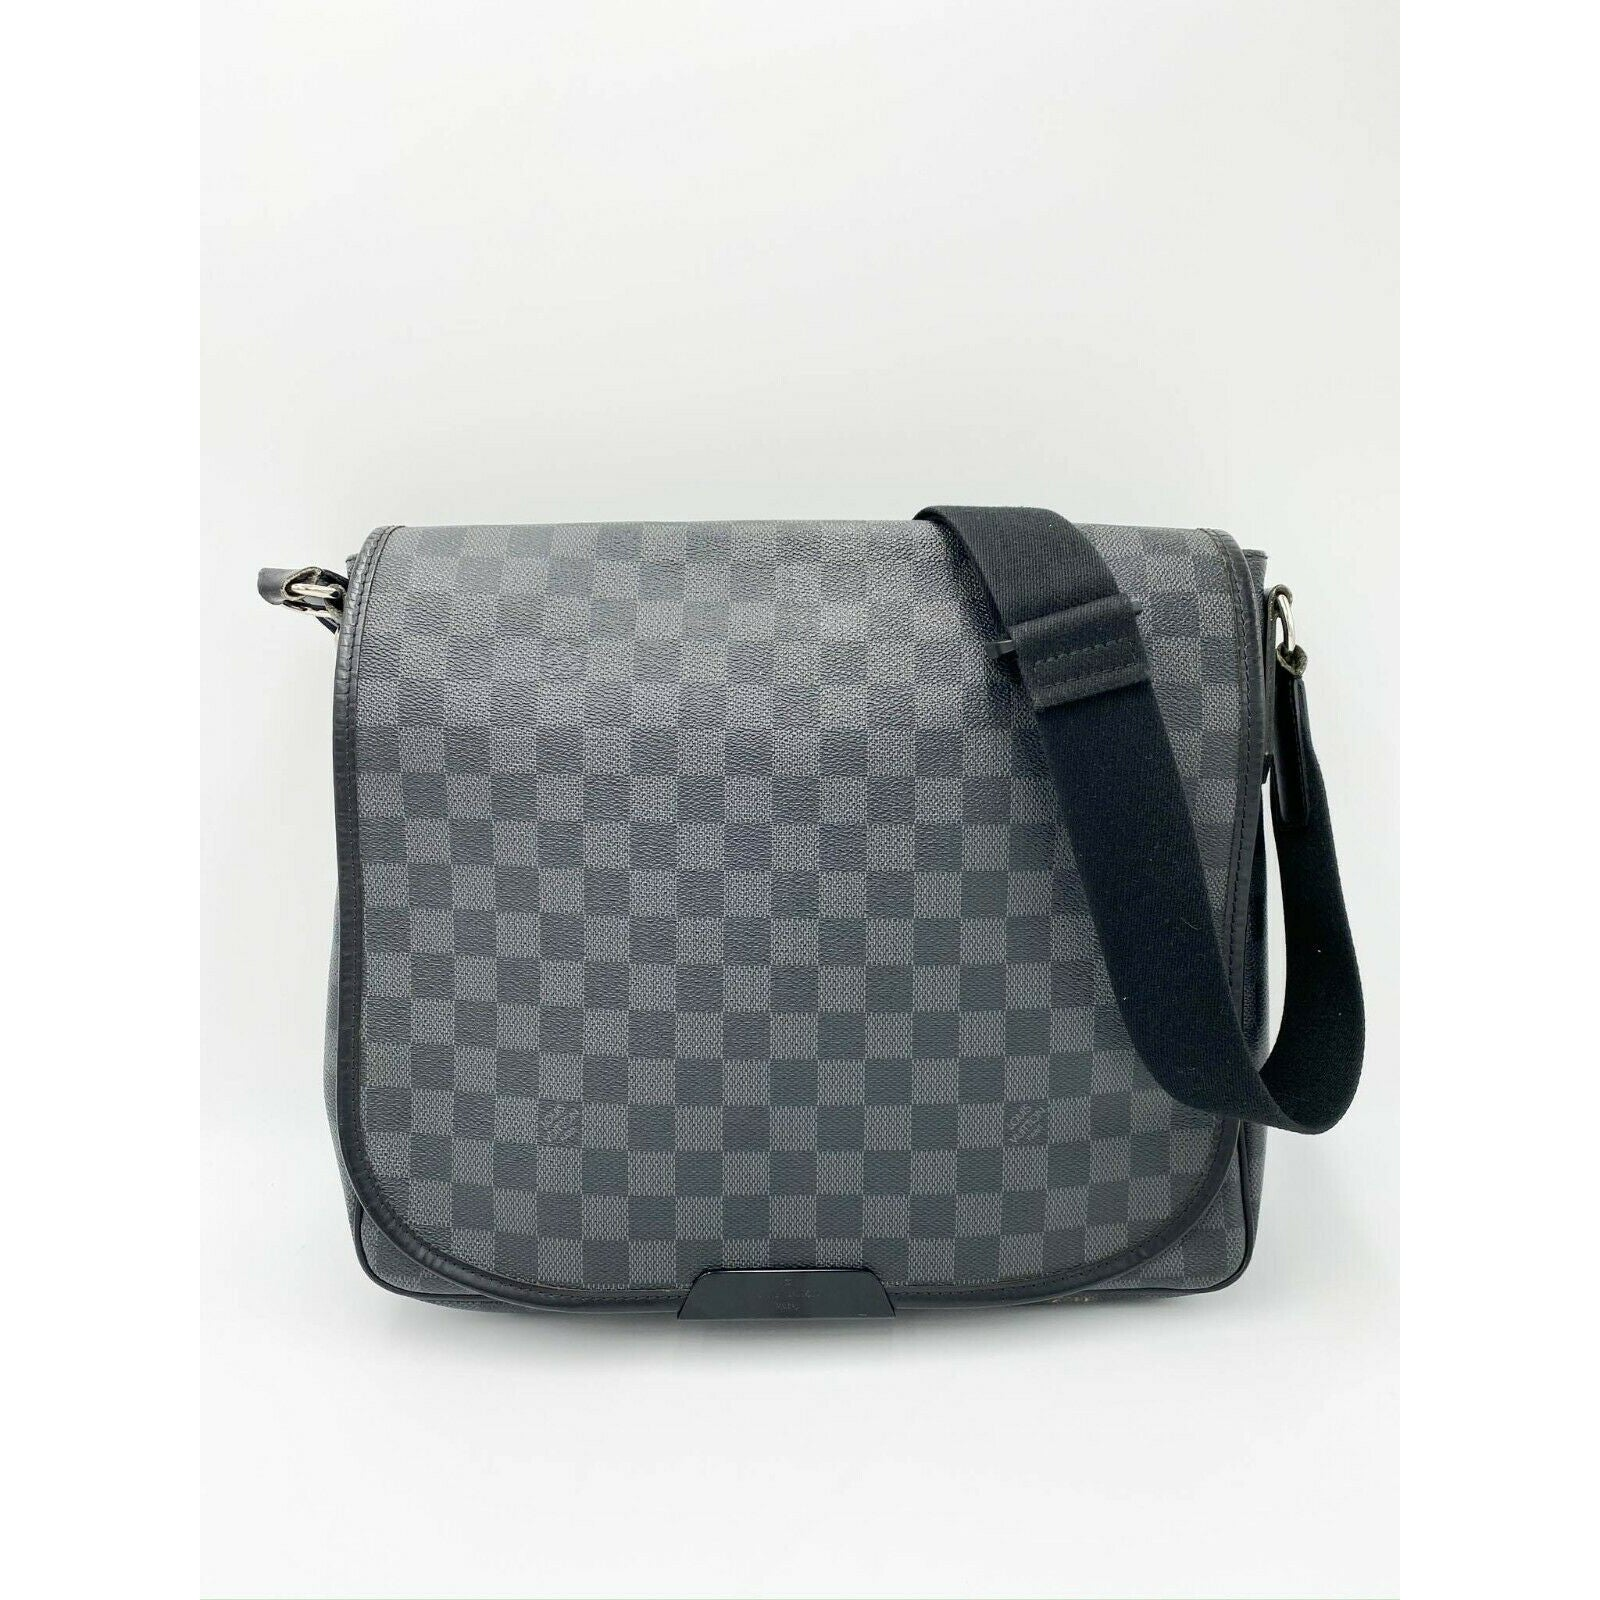 Louis Vuitton Daniel Mm Black Damier Graphite Canvas Laptop Bag Messenger